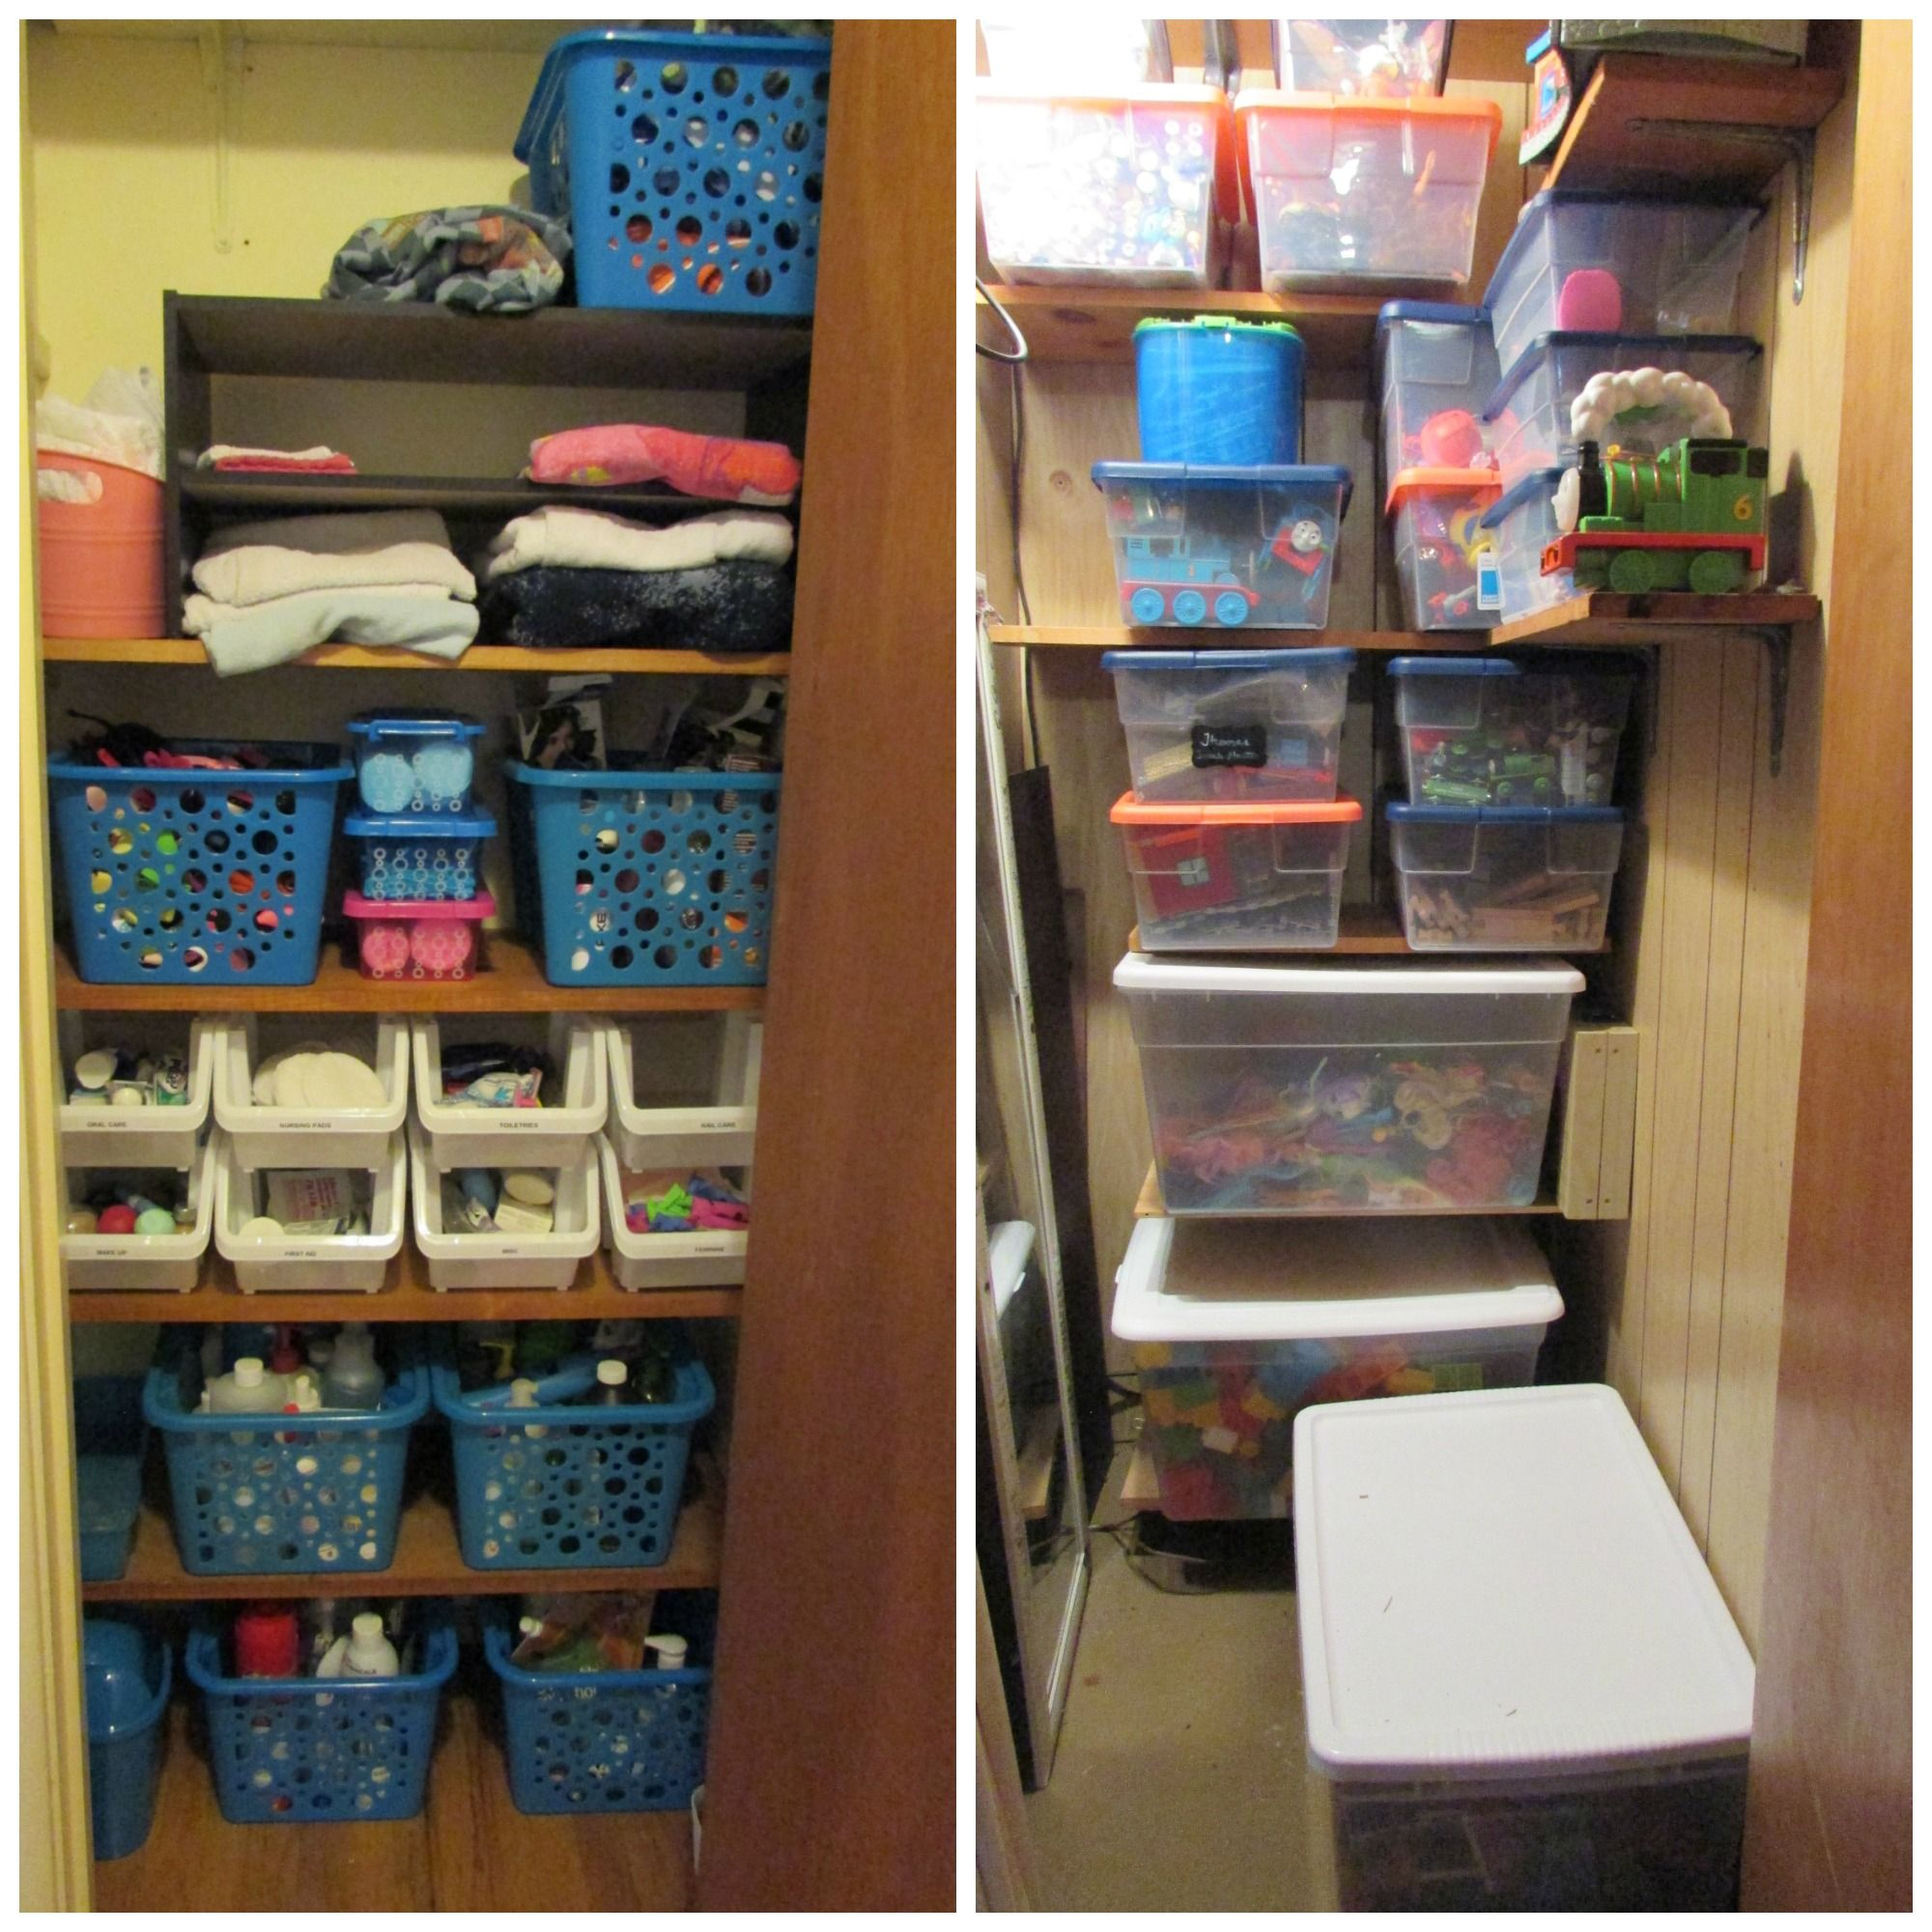 Organized My Linen Closet And Toy Closet With Bins From The Dollar Tree And Target Makes Life So Much Eas Closet Planning Dollar Store Organizing Linen Closet